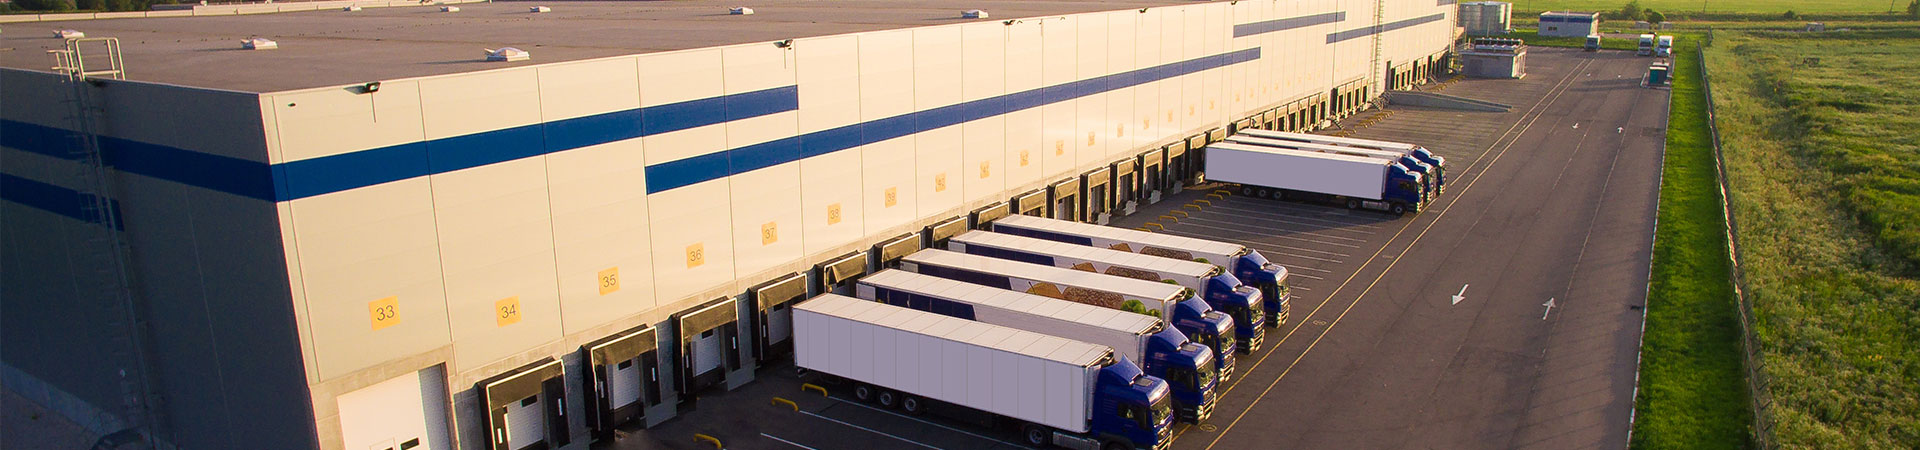 Trucks at a Distribution Site